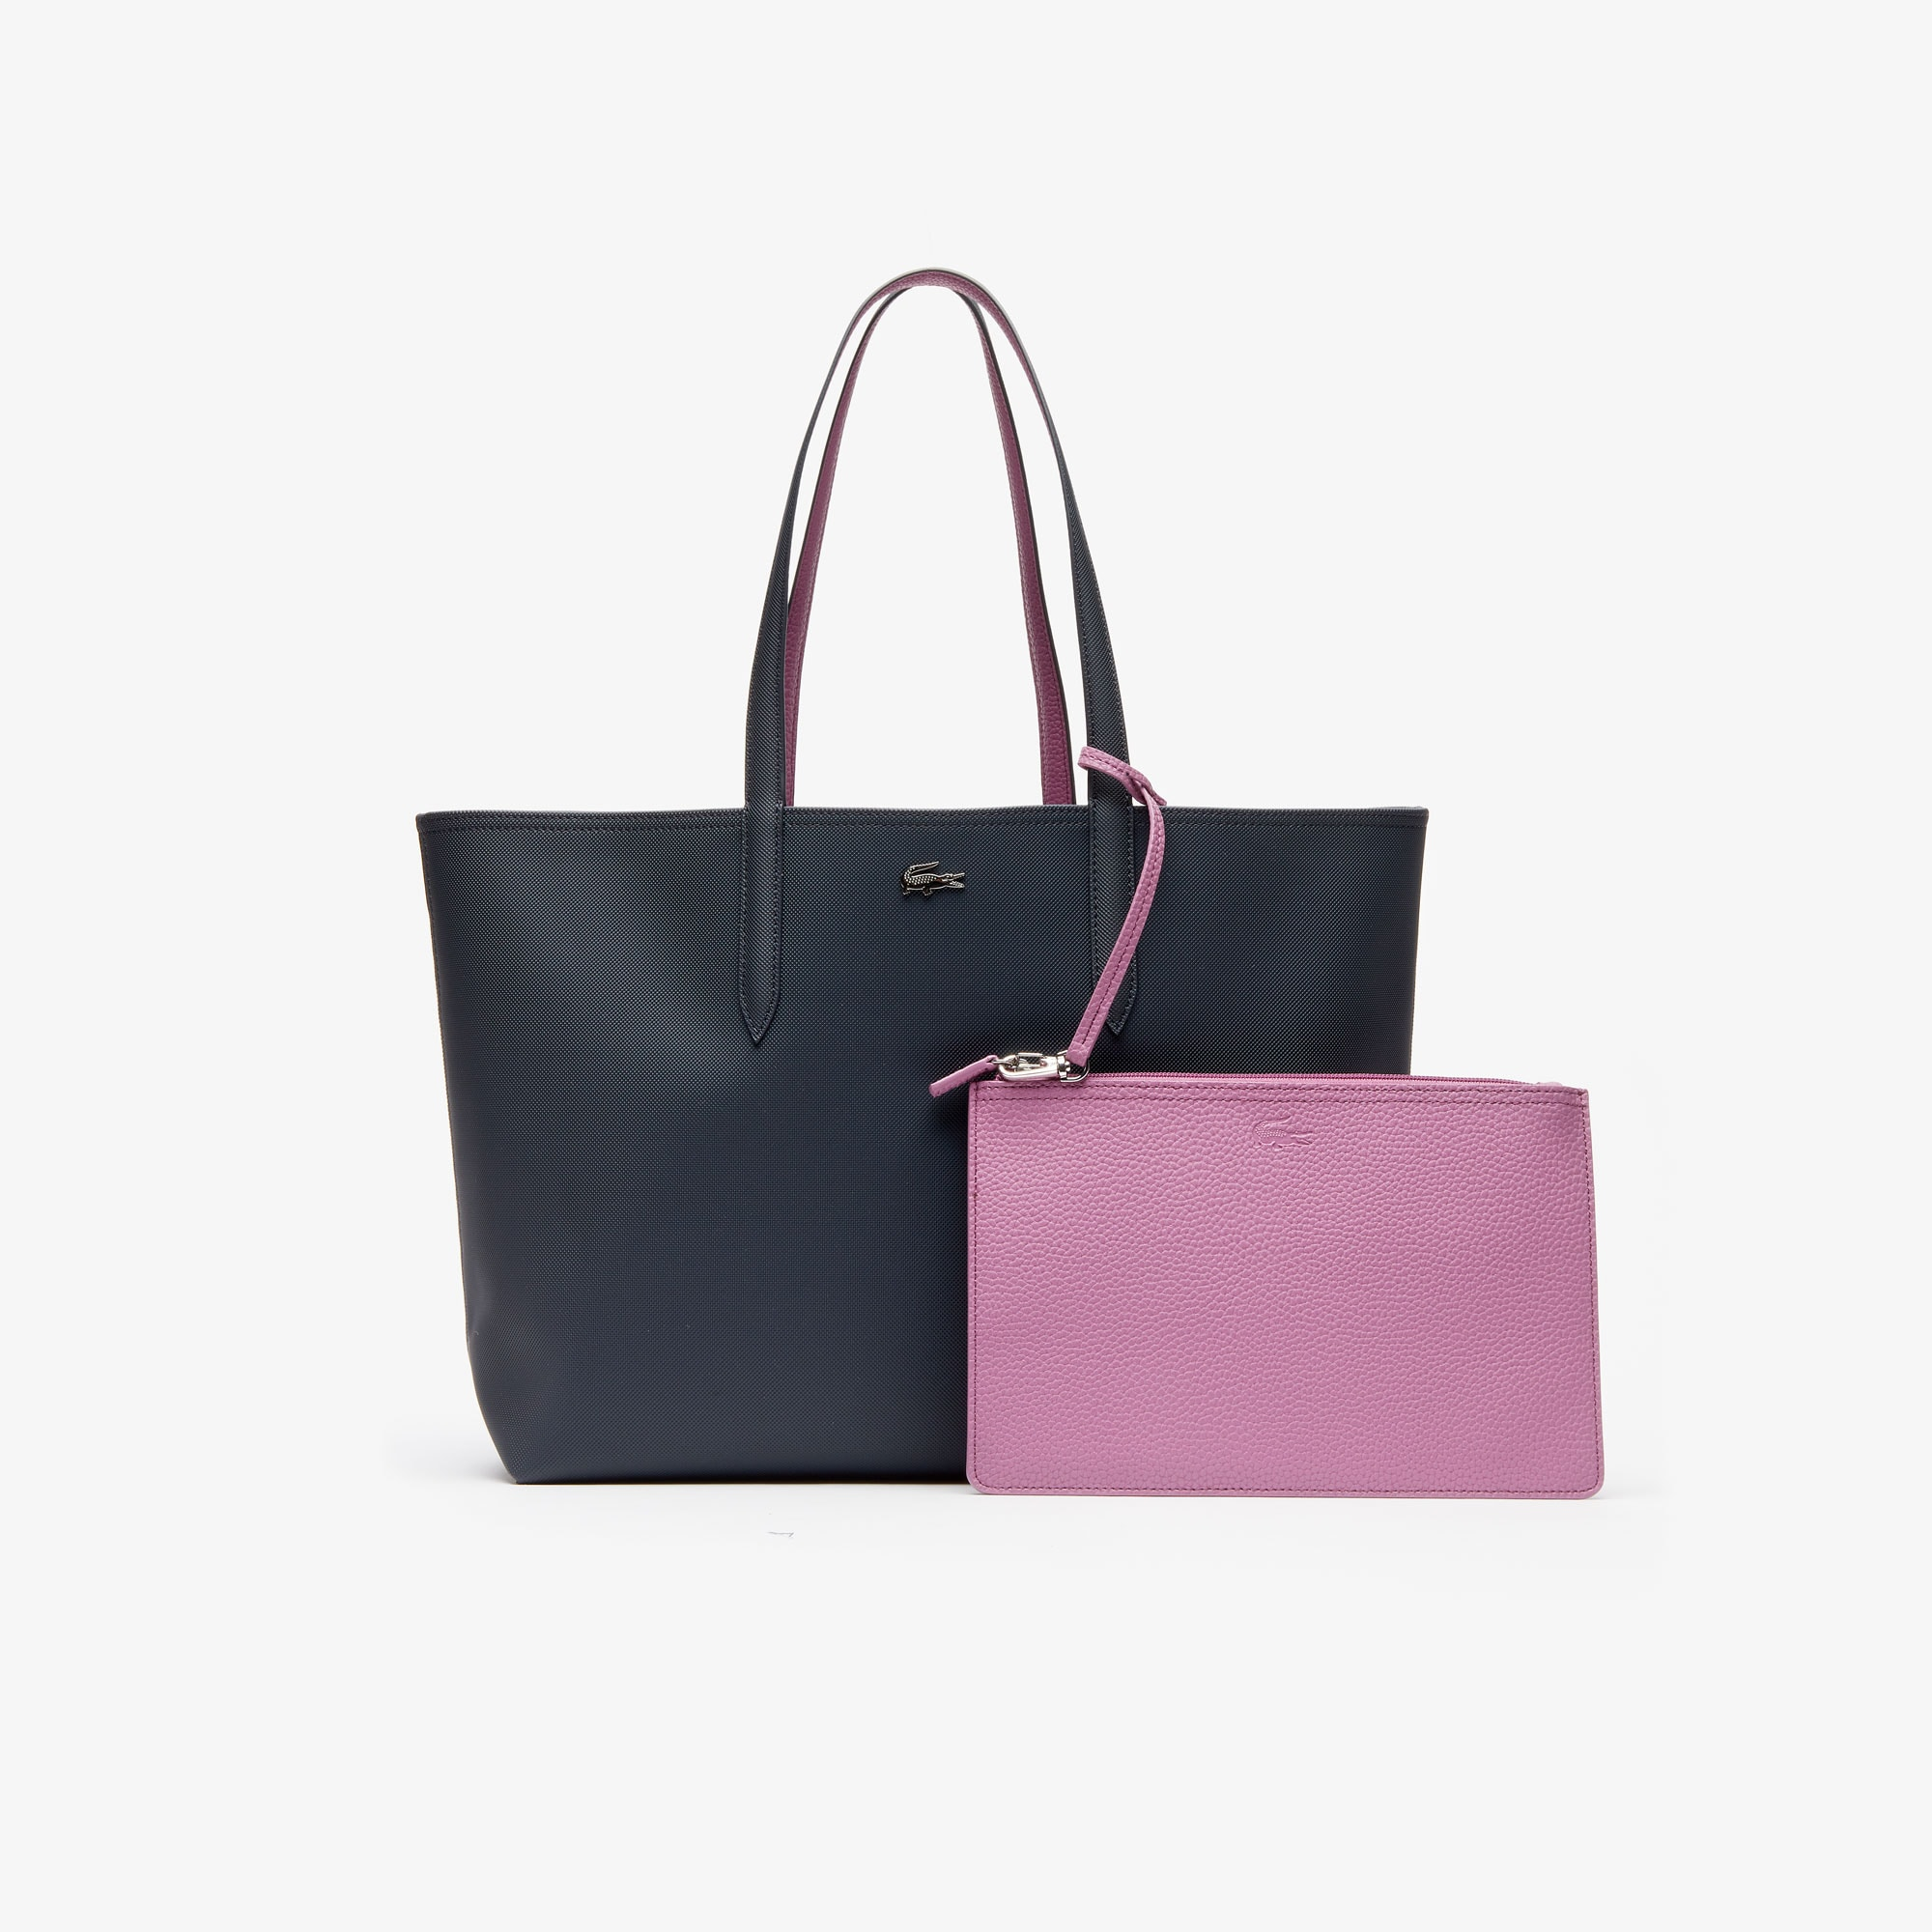 1f229e62af6af Bags & Handbags Collection | Women's Leather Goods | LACOSTE